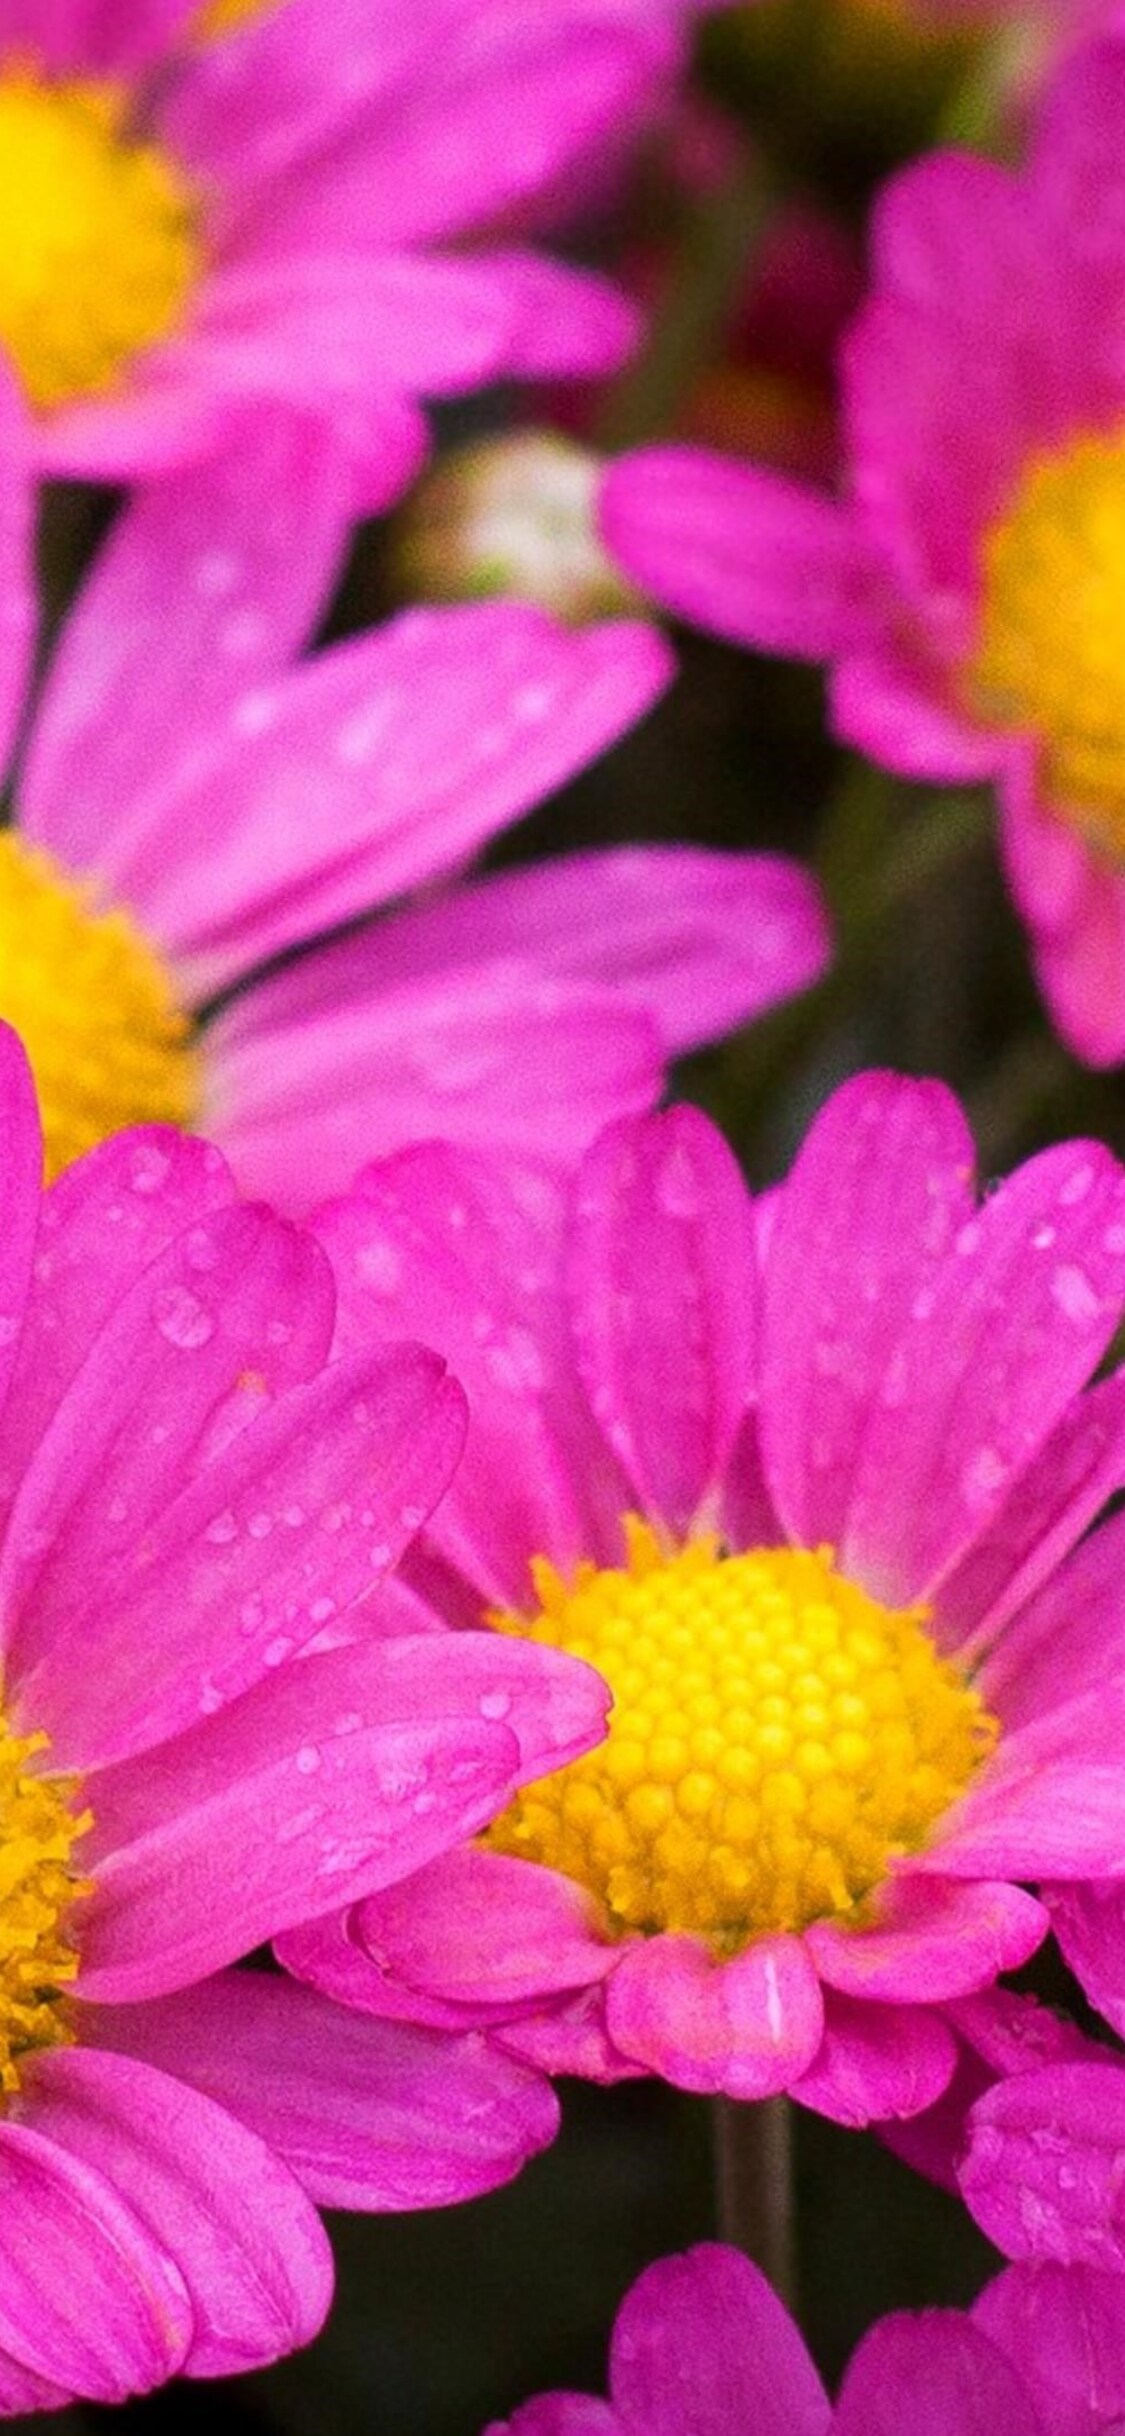 1125x2436 Water Drops On Pink Daisies Iphone Xs Iphone 10 Iphone X